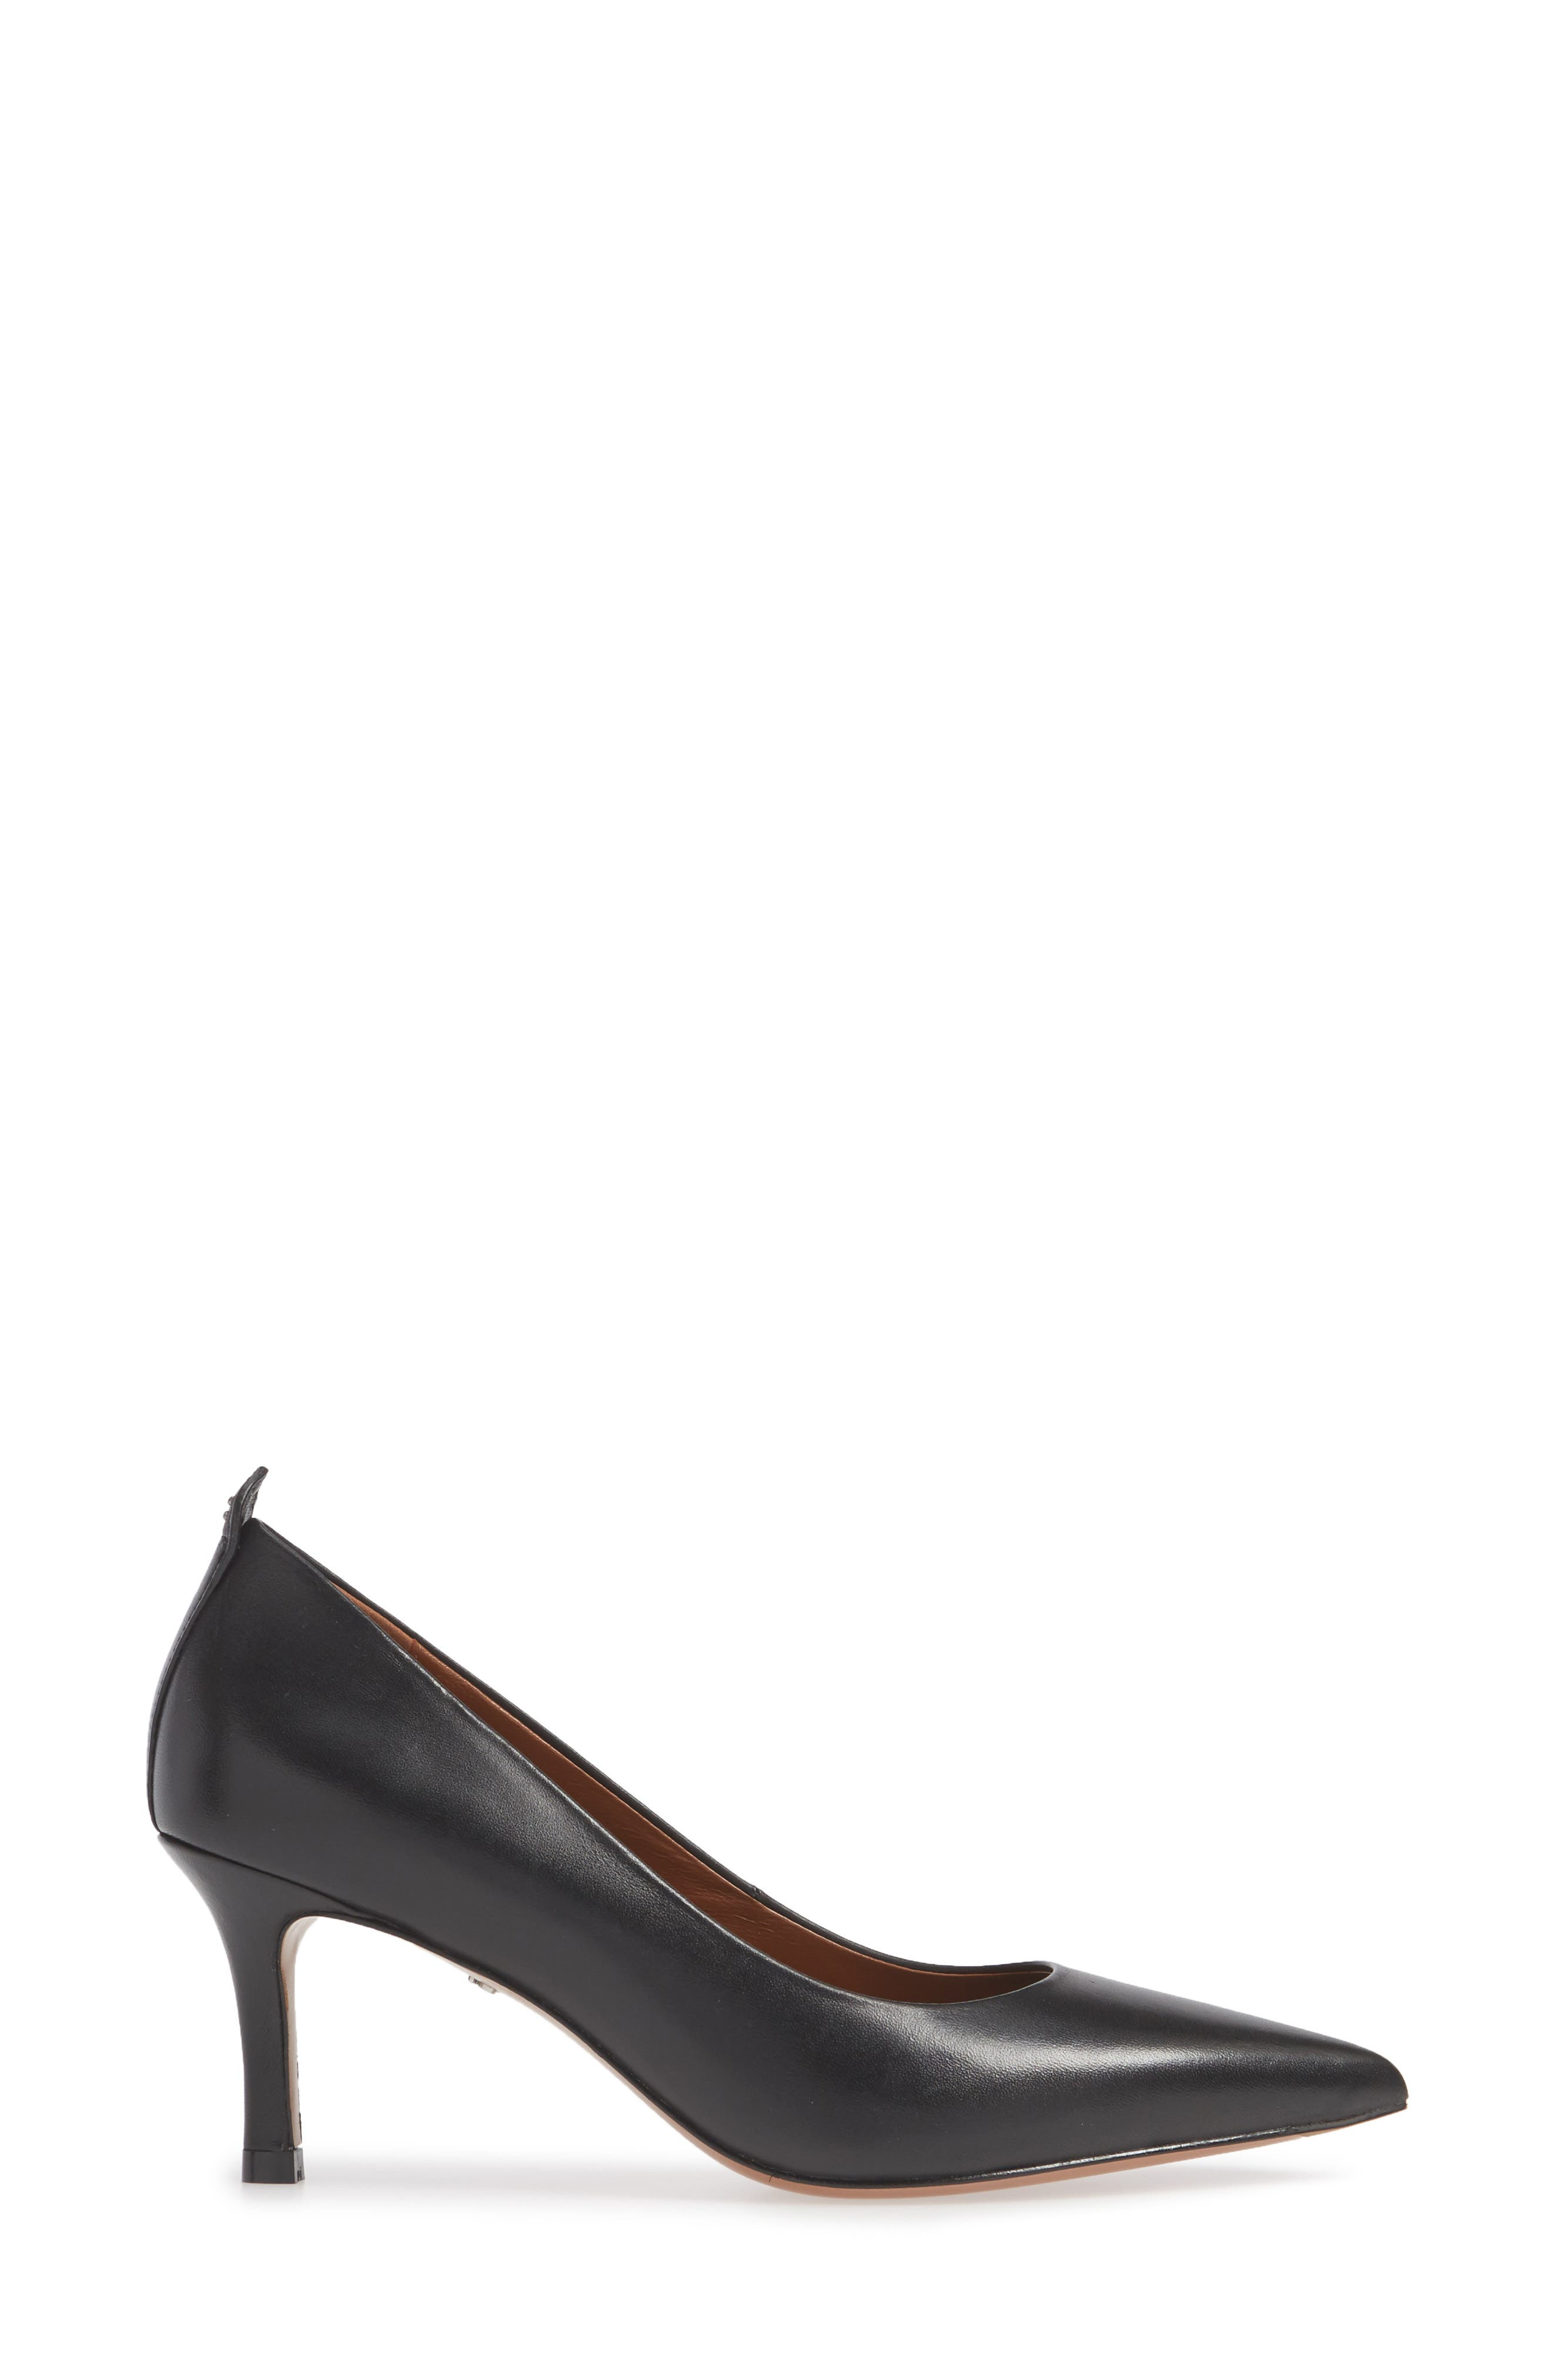 COACH, Waverly Mid Heel Pump, Alternate thumbnail 3, color, BLACK LEATHER